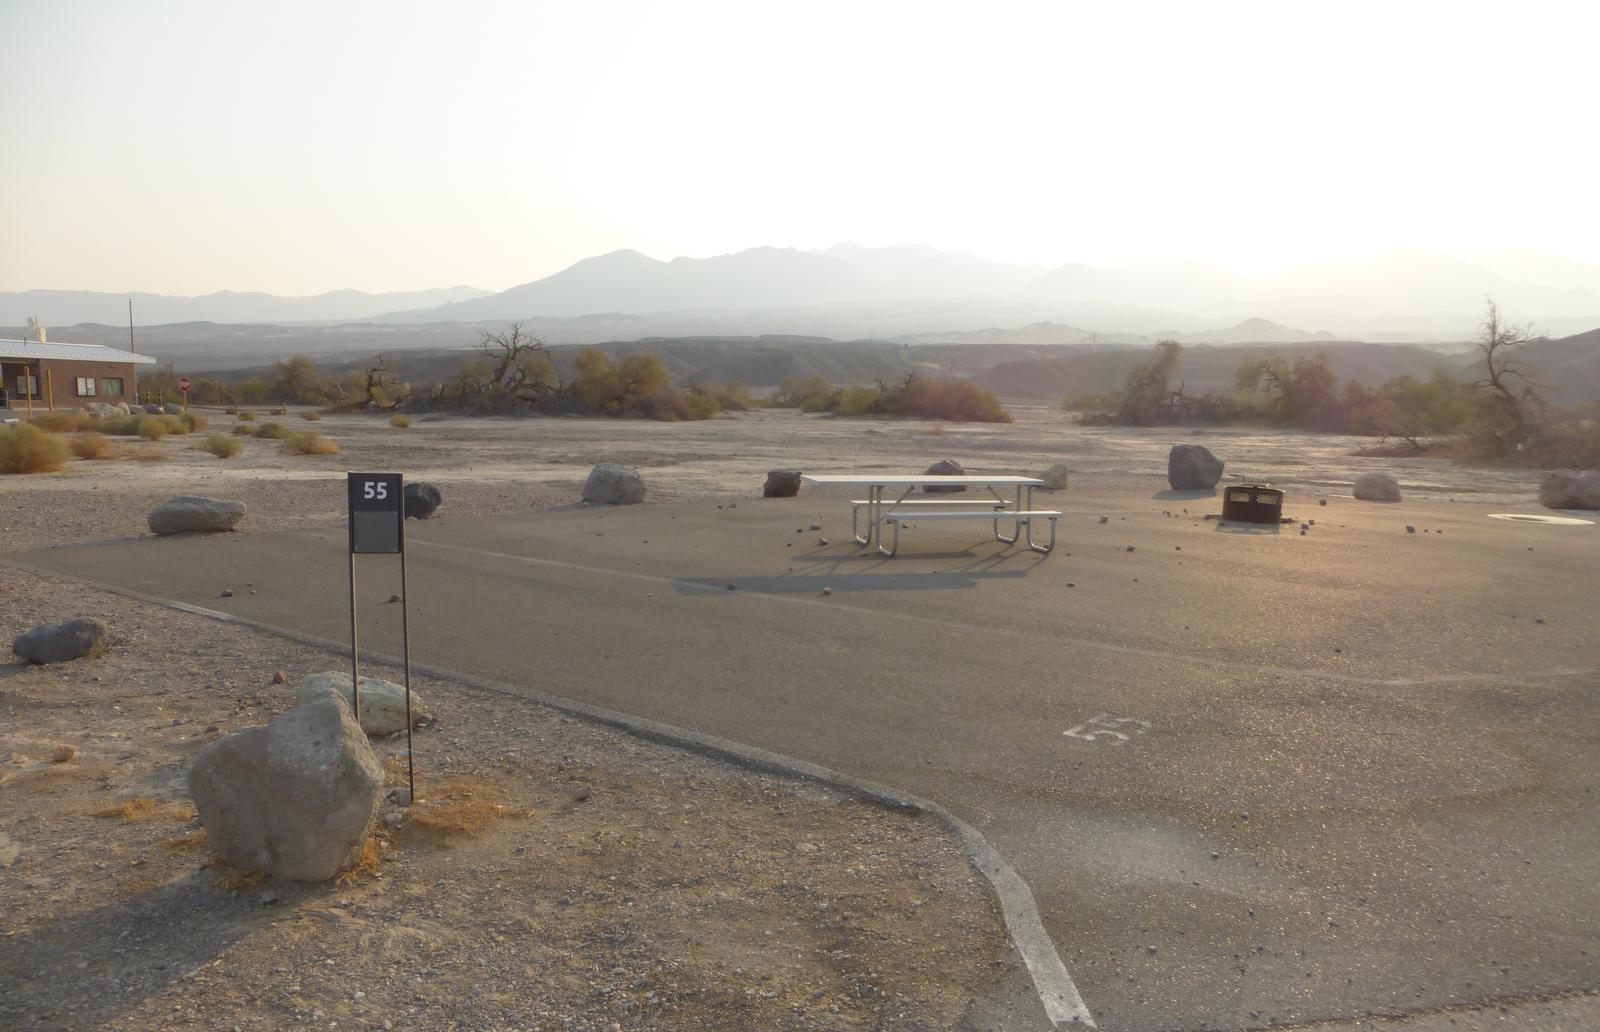 Furnace Creek Campground standard nonelectric site #55 with picnic table and shared fire ring with site #54.